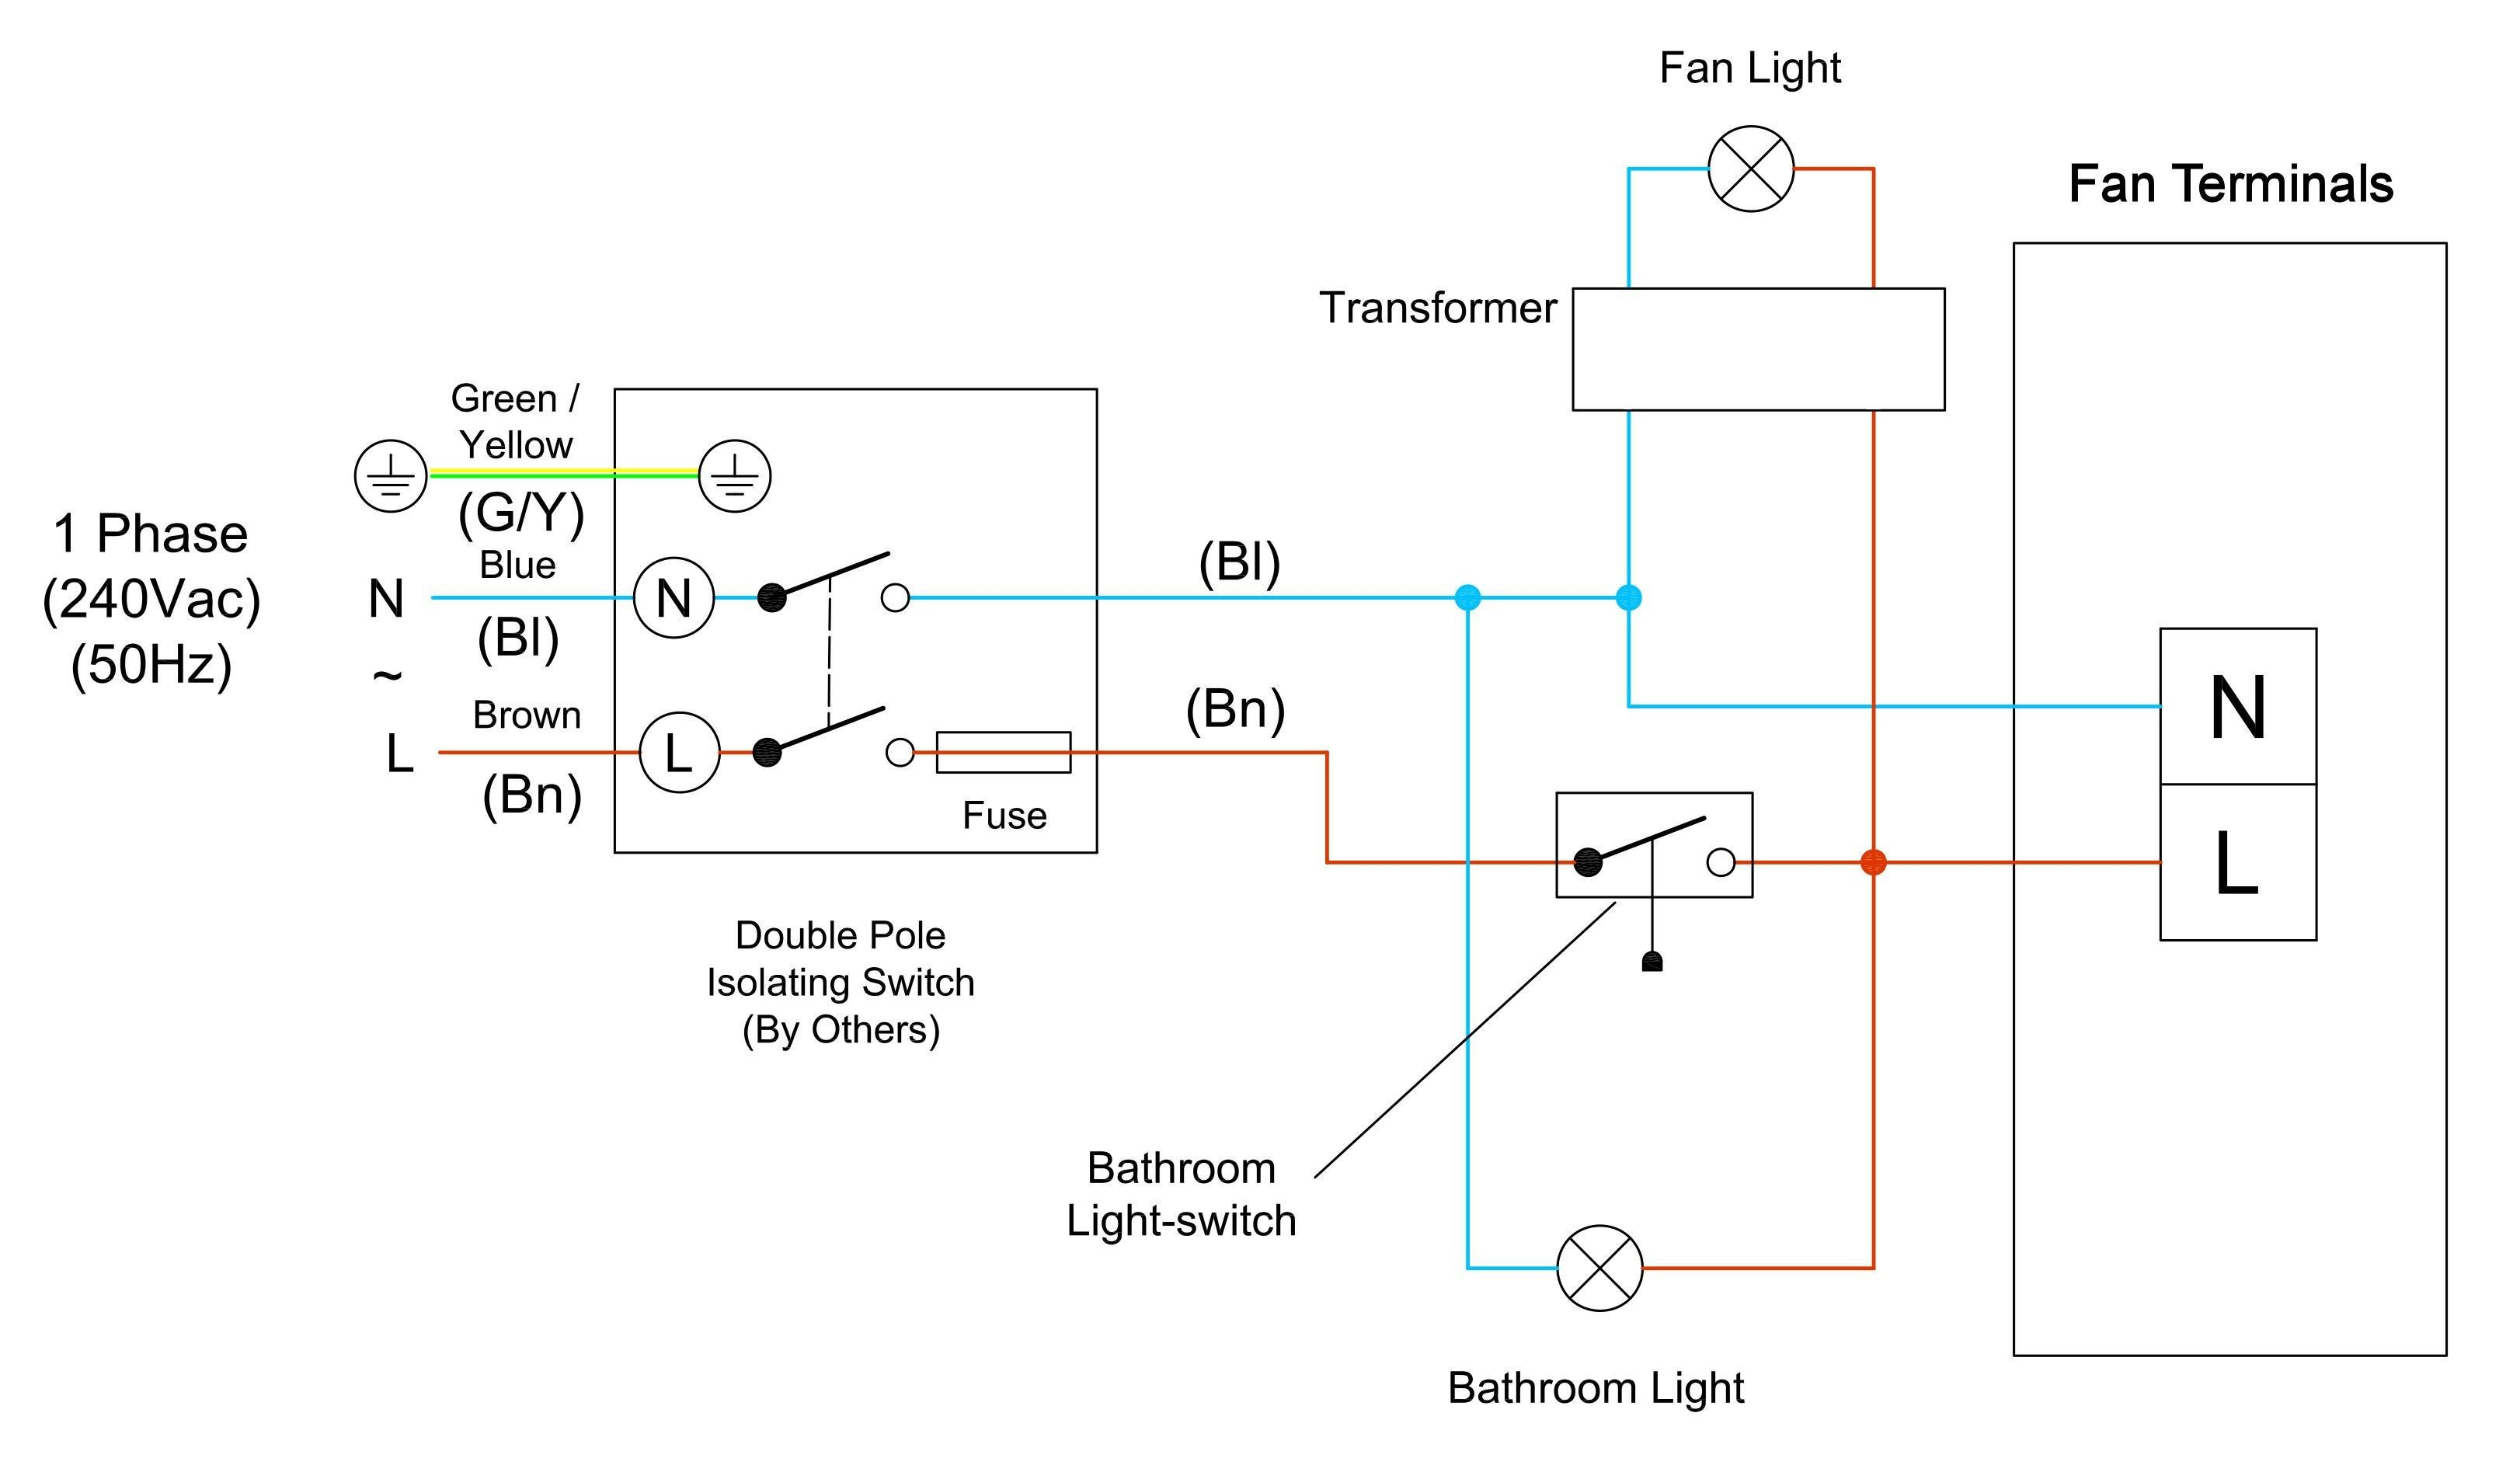 New Wiring Diagram For Garage Lighting Diagram Diagramsample Diagramtemplate Wiringdiagram Diagramchart Bathroom Fan Light Bathroom Fan Bathroom Lighting